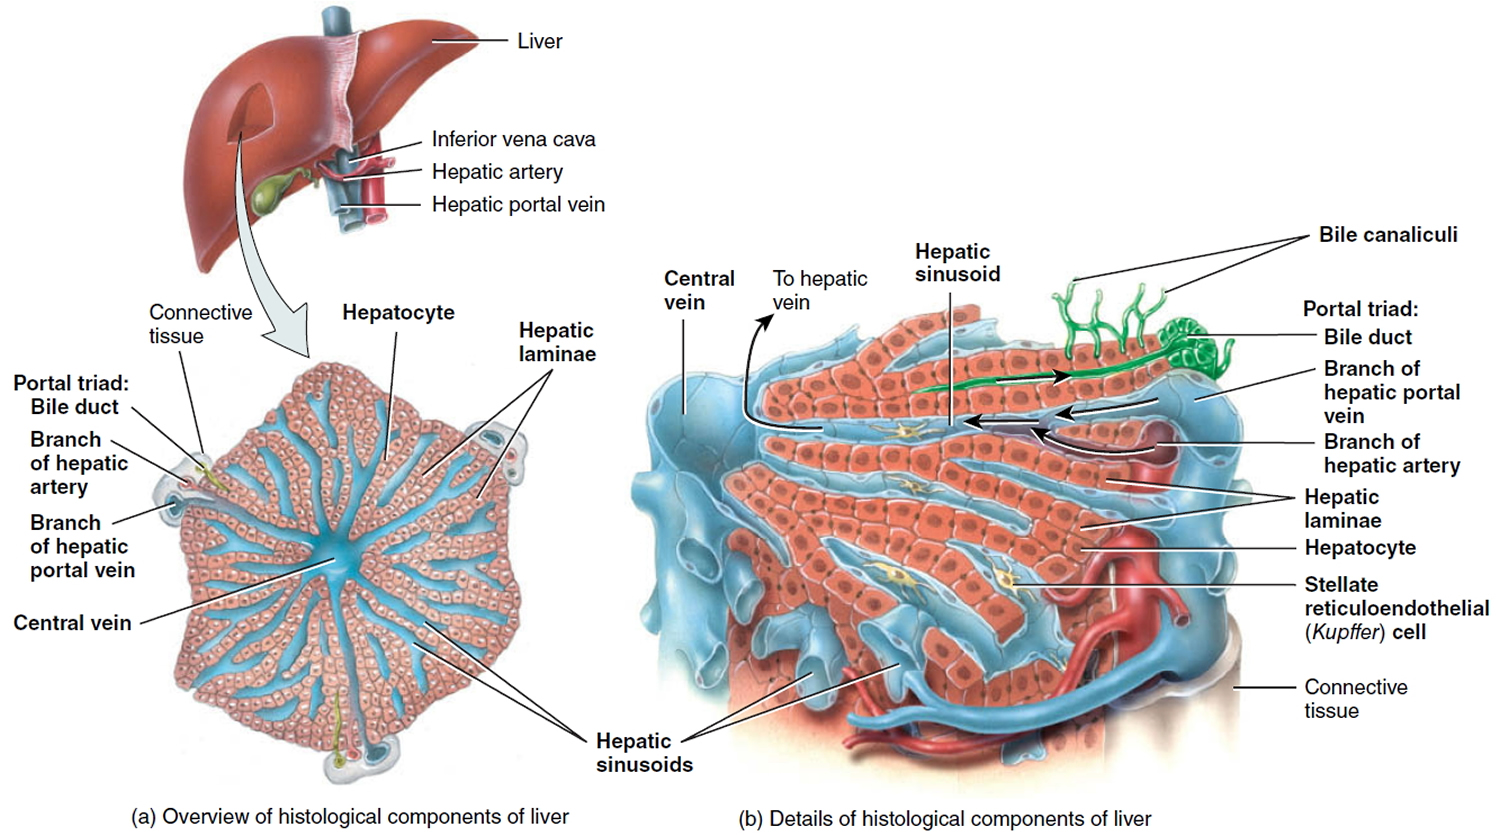 Cholangiocarcinoma - Bile Duct Cancer - Causes, Symptoms, Treatment